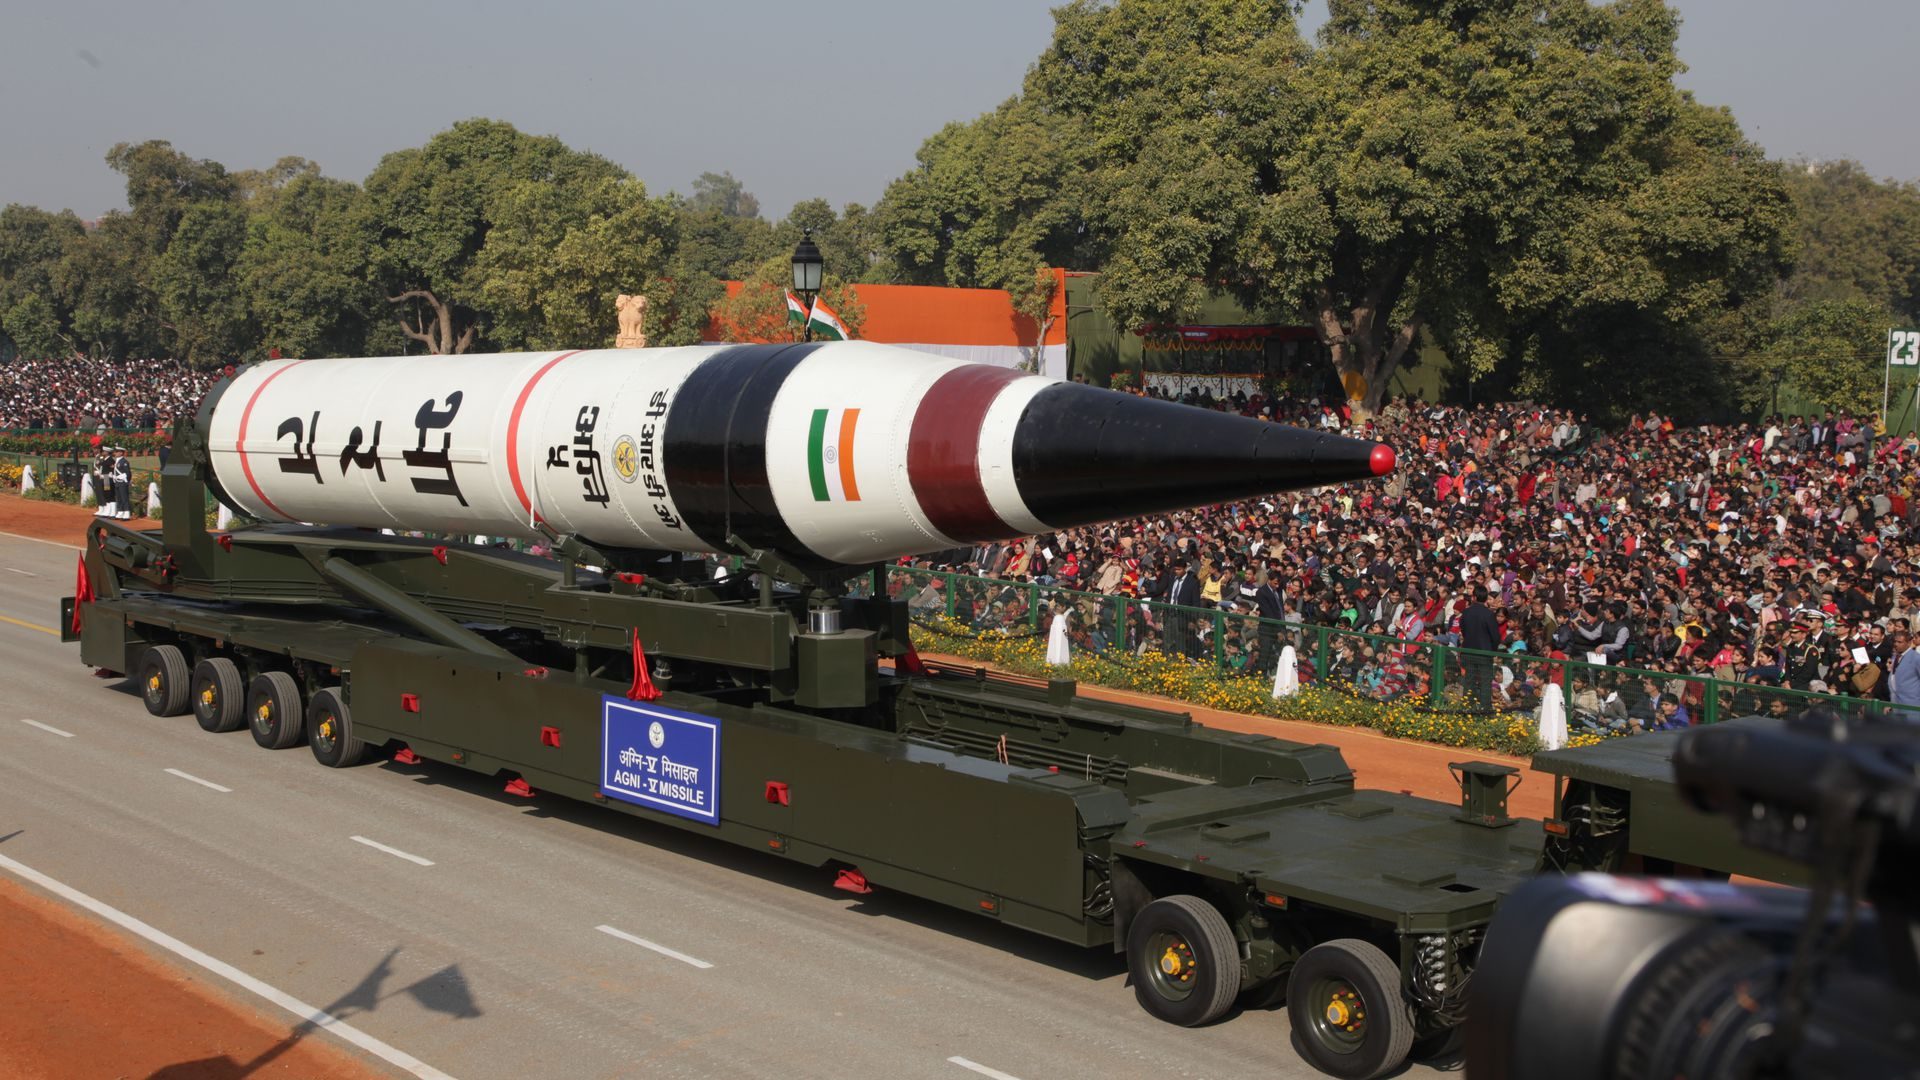 India's Agni 5 ballistic missile in 2013.